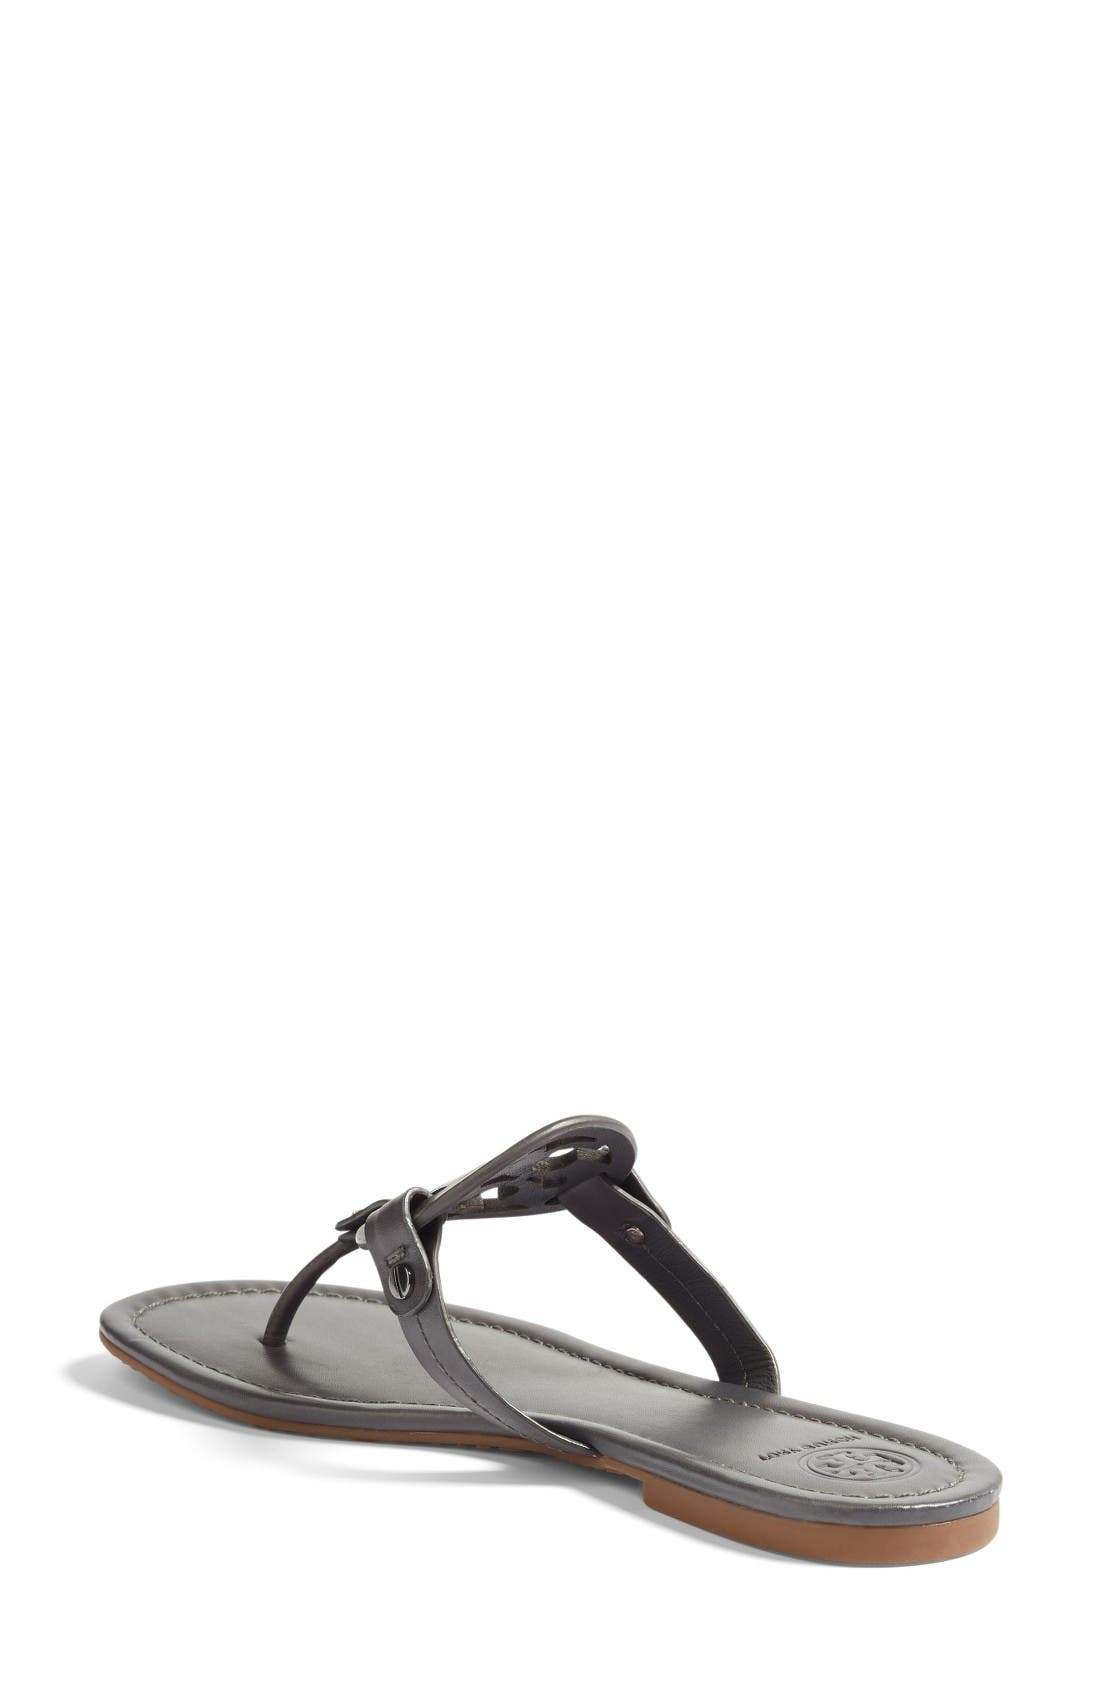 'Miller' Flip Flop,                             Alternate thumbnail 2, color,                             Dark Grey